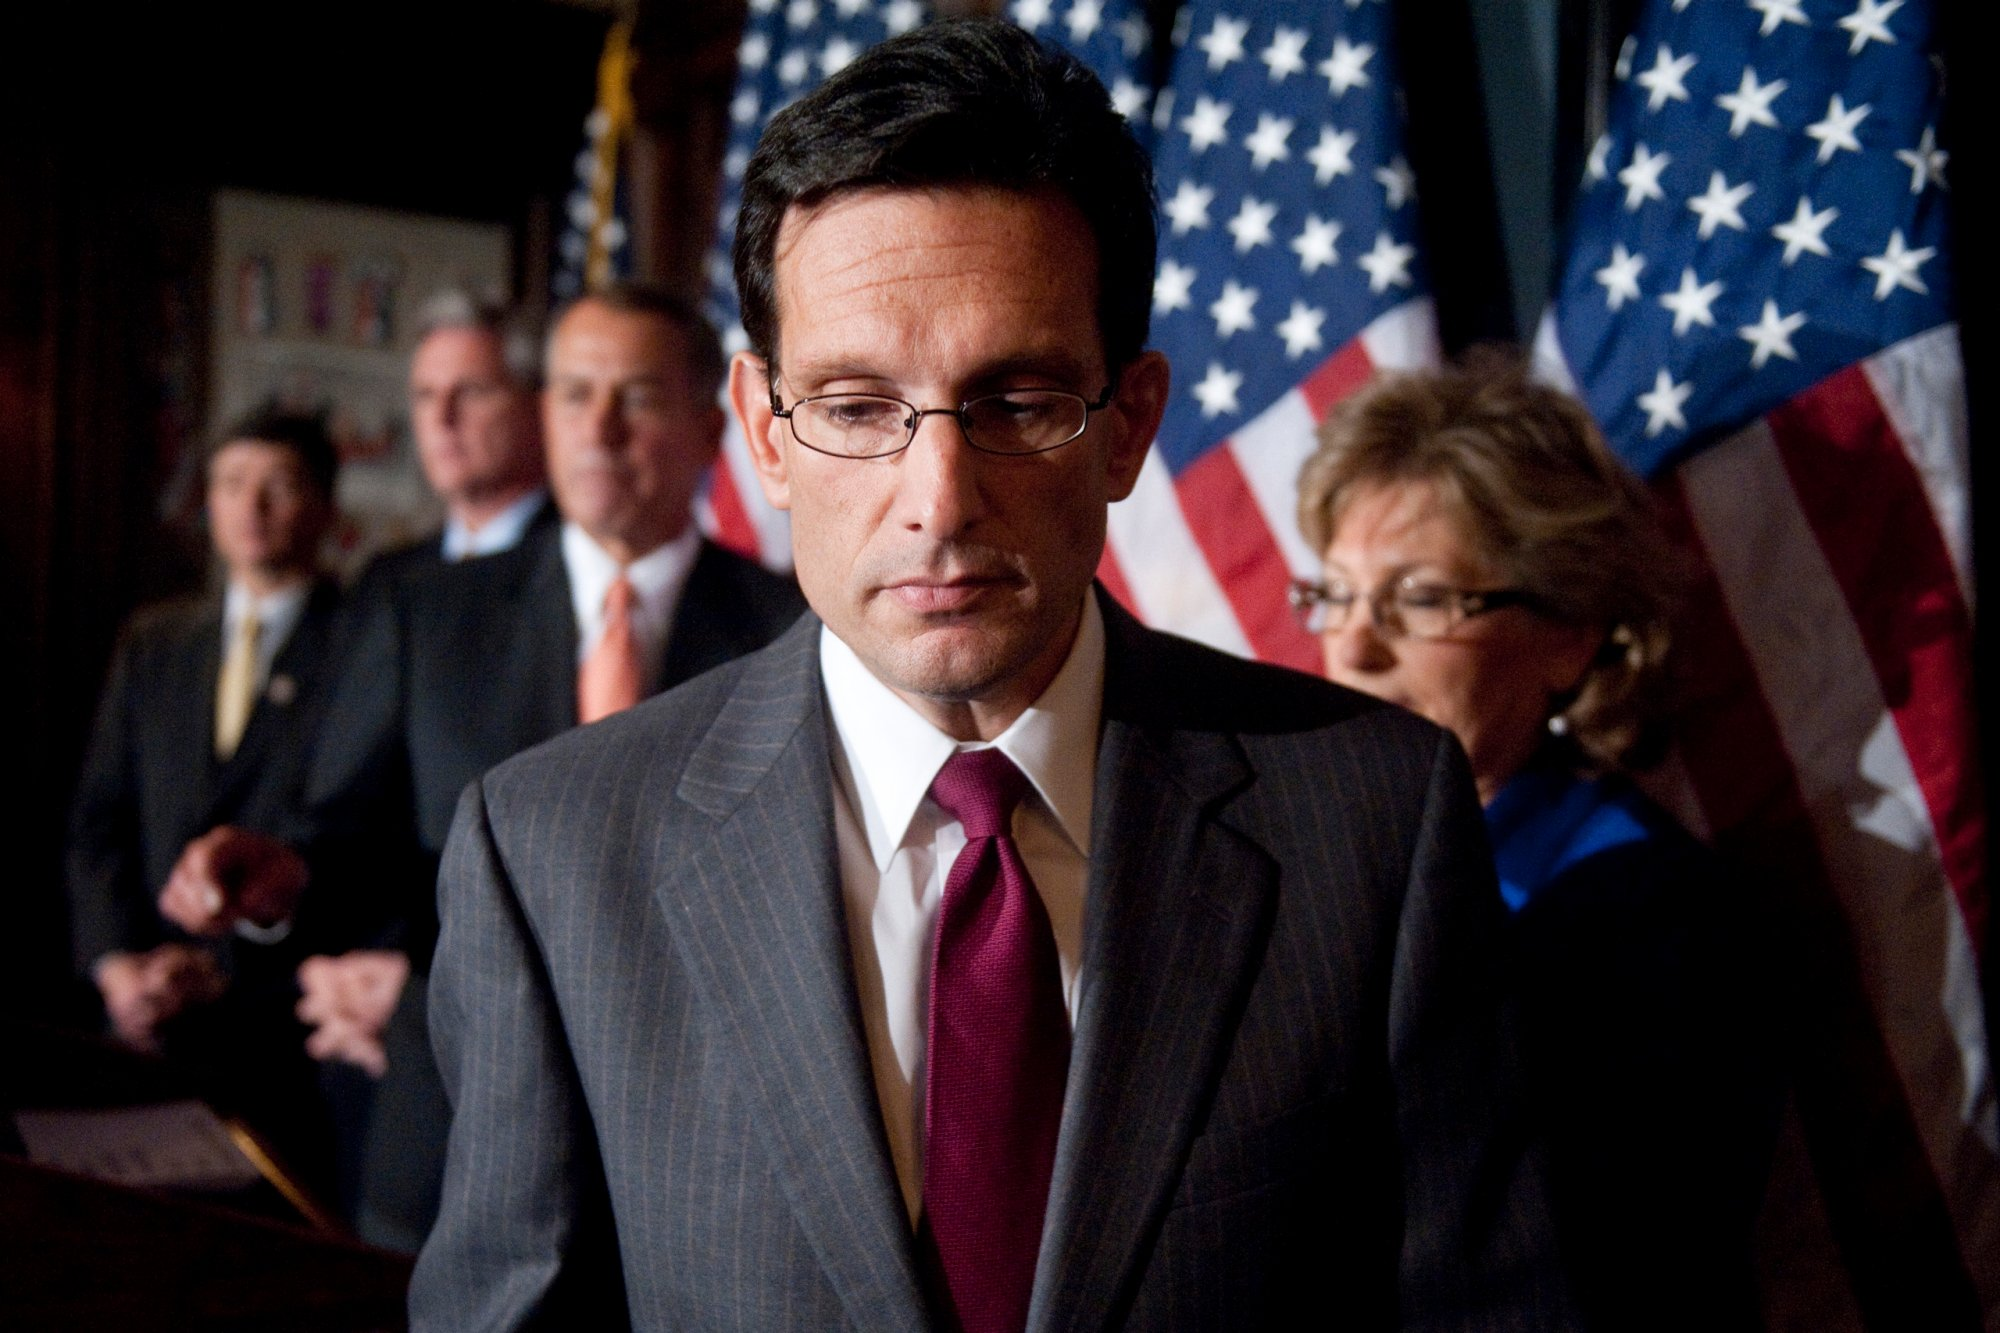 Eric Cantor Backgrounds, Compatible - PC, Mobile, Gadgets| 2000x1333 px